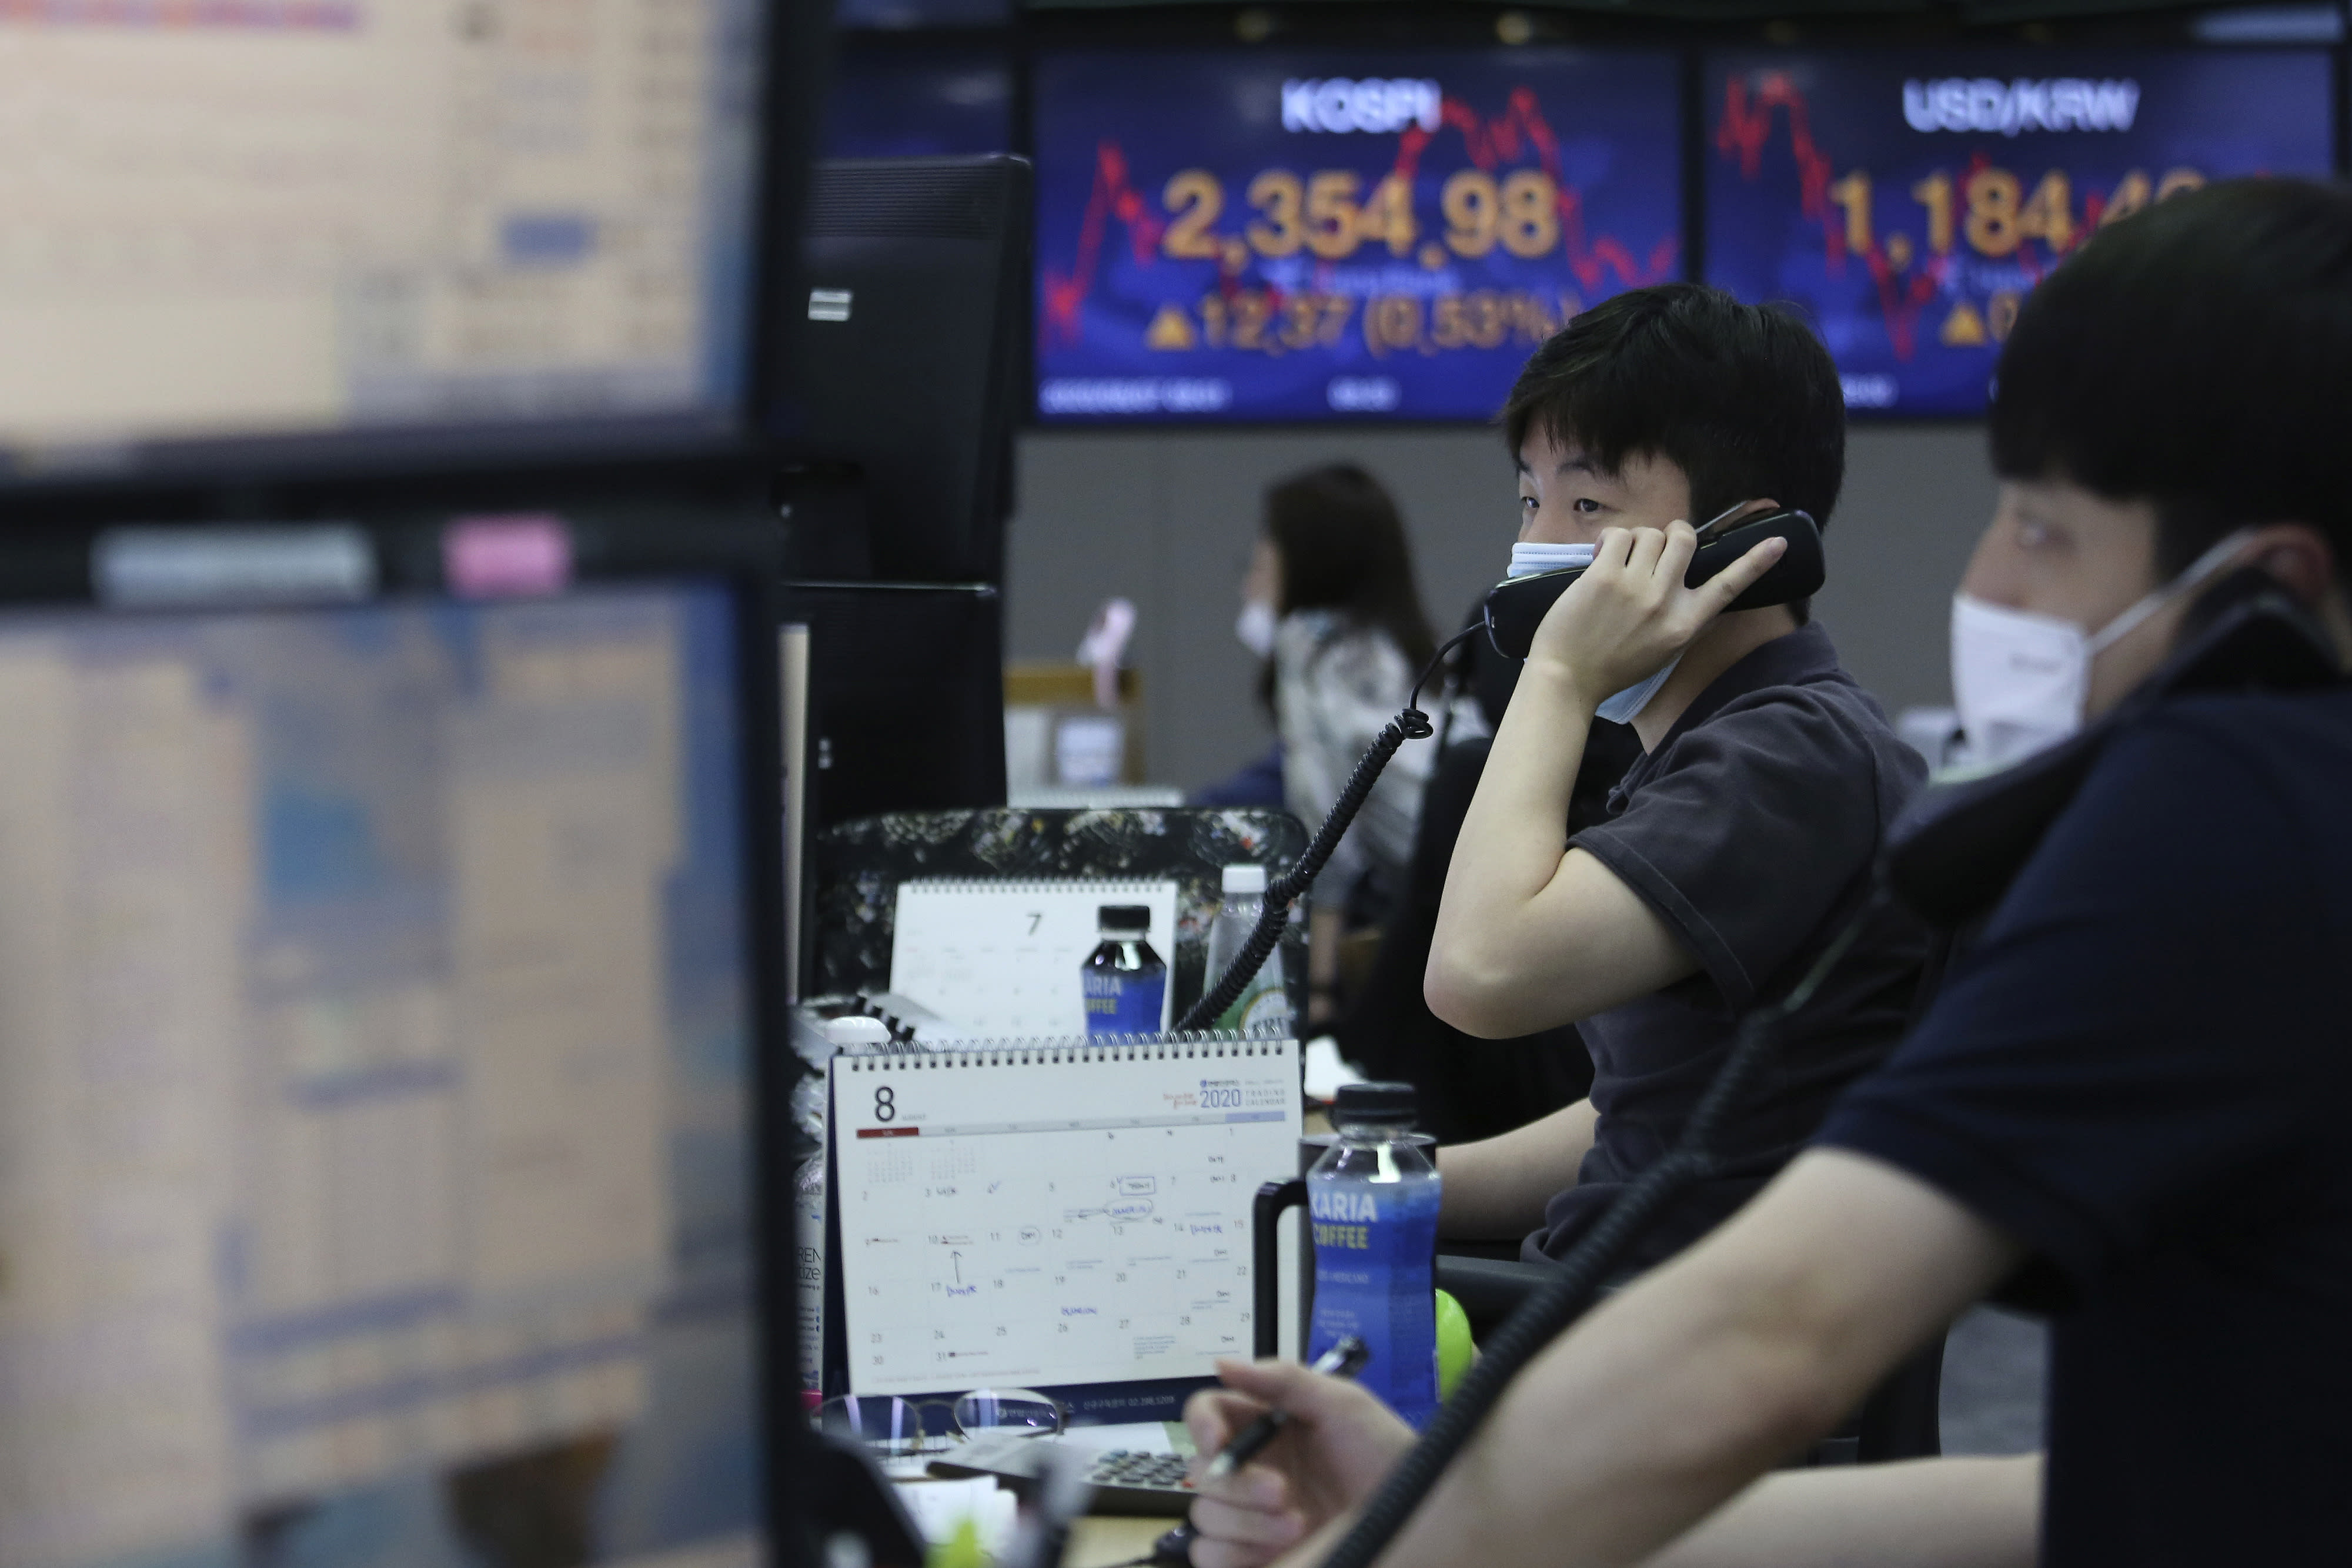 Currency traders talk on phones at the foreign exchange dealing room of the KEB Hana Bank headquarters in Seoul, South Korea, Friday, Aug. 7, 2020. Asian shares were mostly lower Friday in lackluster trading, as the region weighed continuing trade tensions over China and optimism about more fiscal stimulus for the ailing U.S. economy. (AP Photo/Ahn Young-joon)